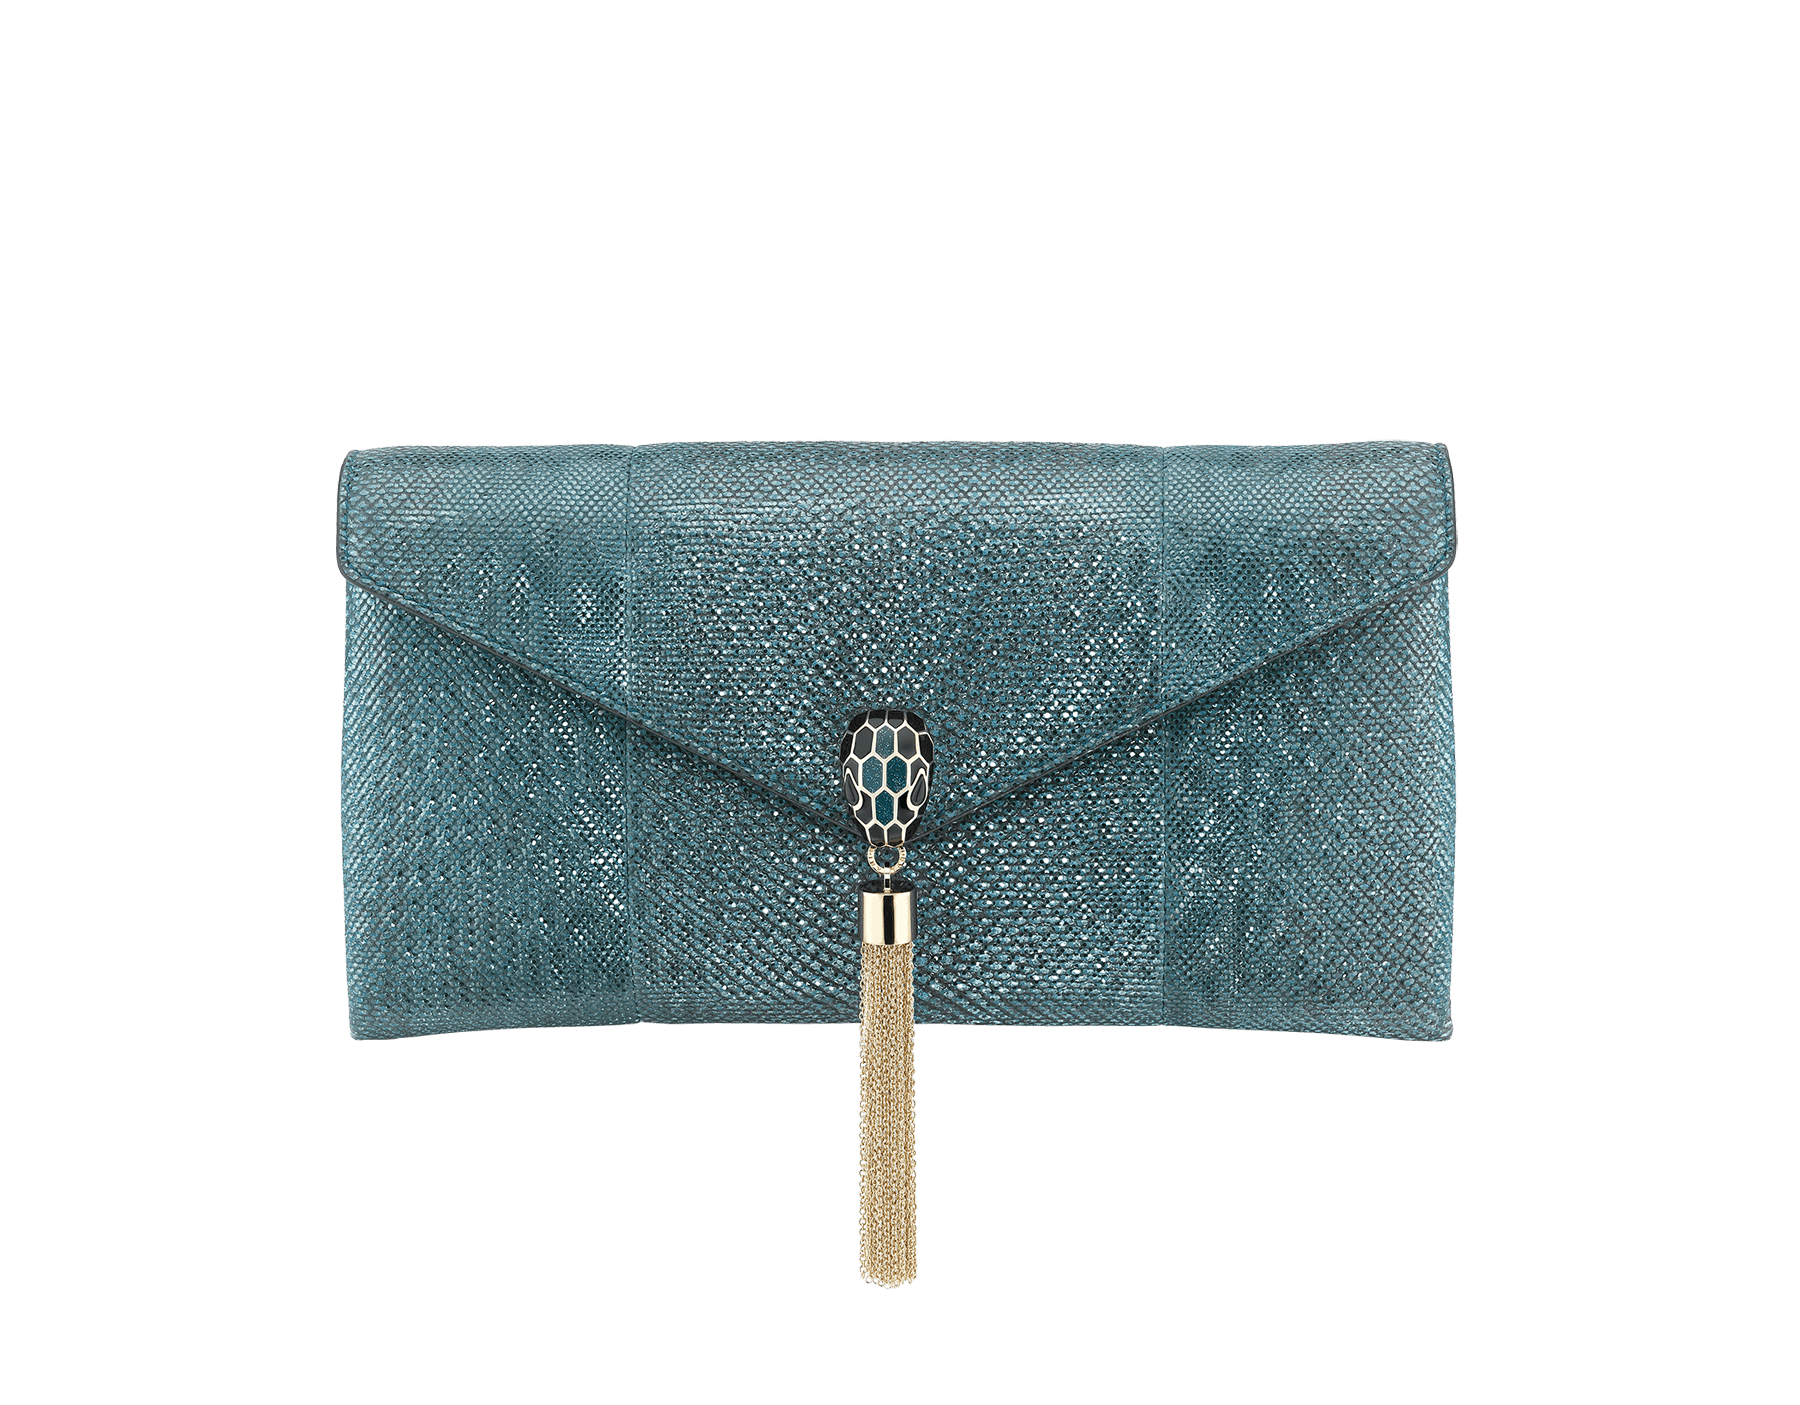 """Serpenti"" evening clutch in multicolor metallic karung skin, with black nappa leather internal lining. Tempting snakehead stud closure in light pink gold plated brass enriched with black and glitter ultra pink gold enamel and black onyx eyes. 526-001-0817S-MK image 1"